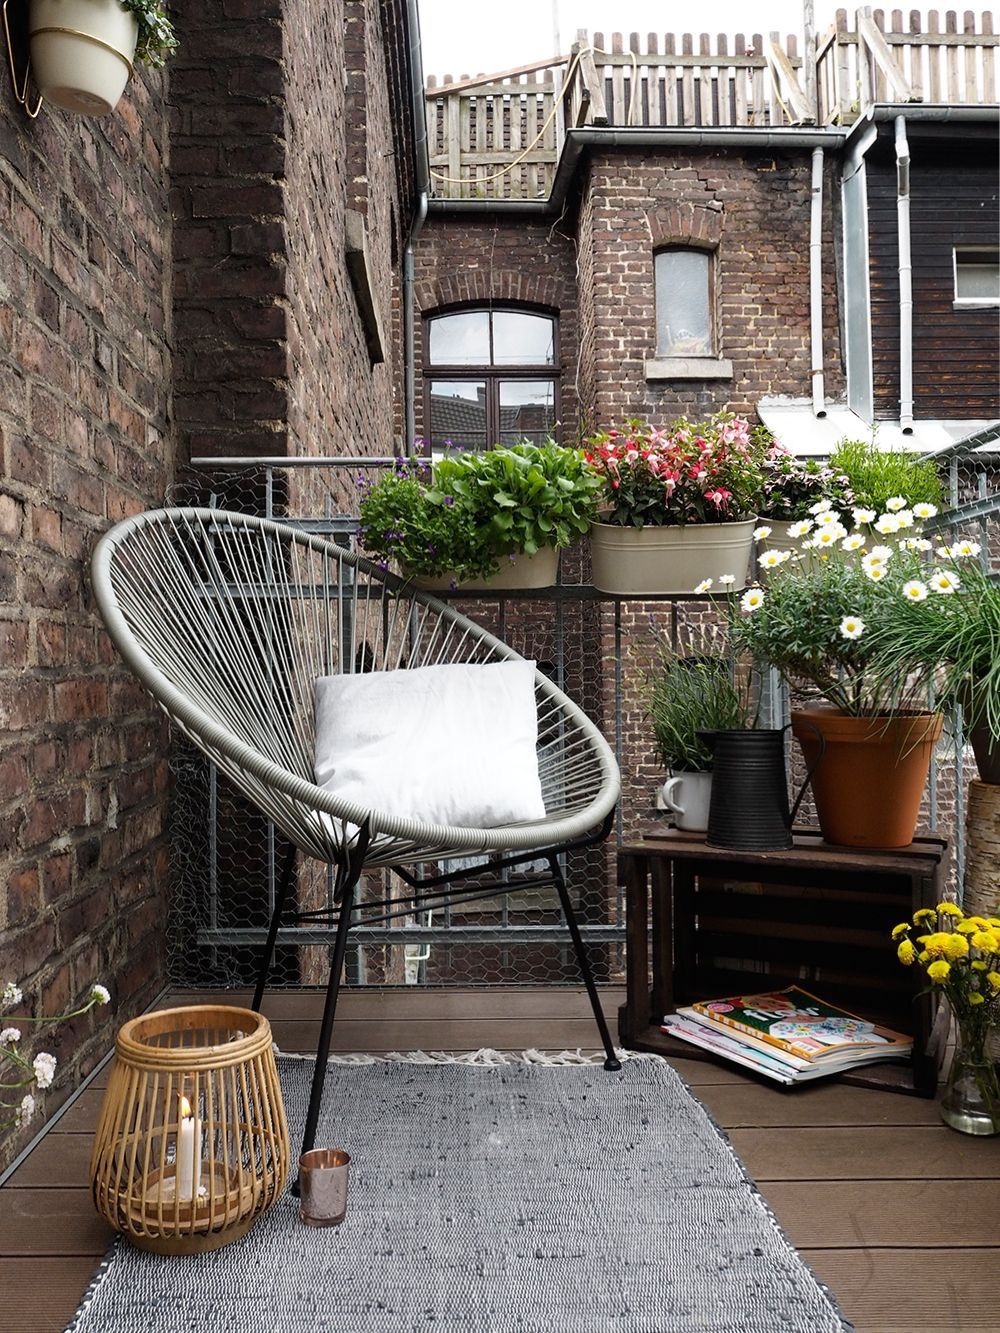 Apartment balcony ideas pictures to pin on pinterest - Balcony Ideas Balcony Garden Outdoor Balcony Outdoor Spaces Outdoor Living Apartment Balconies Small Balconies Terraces Acapulco